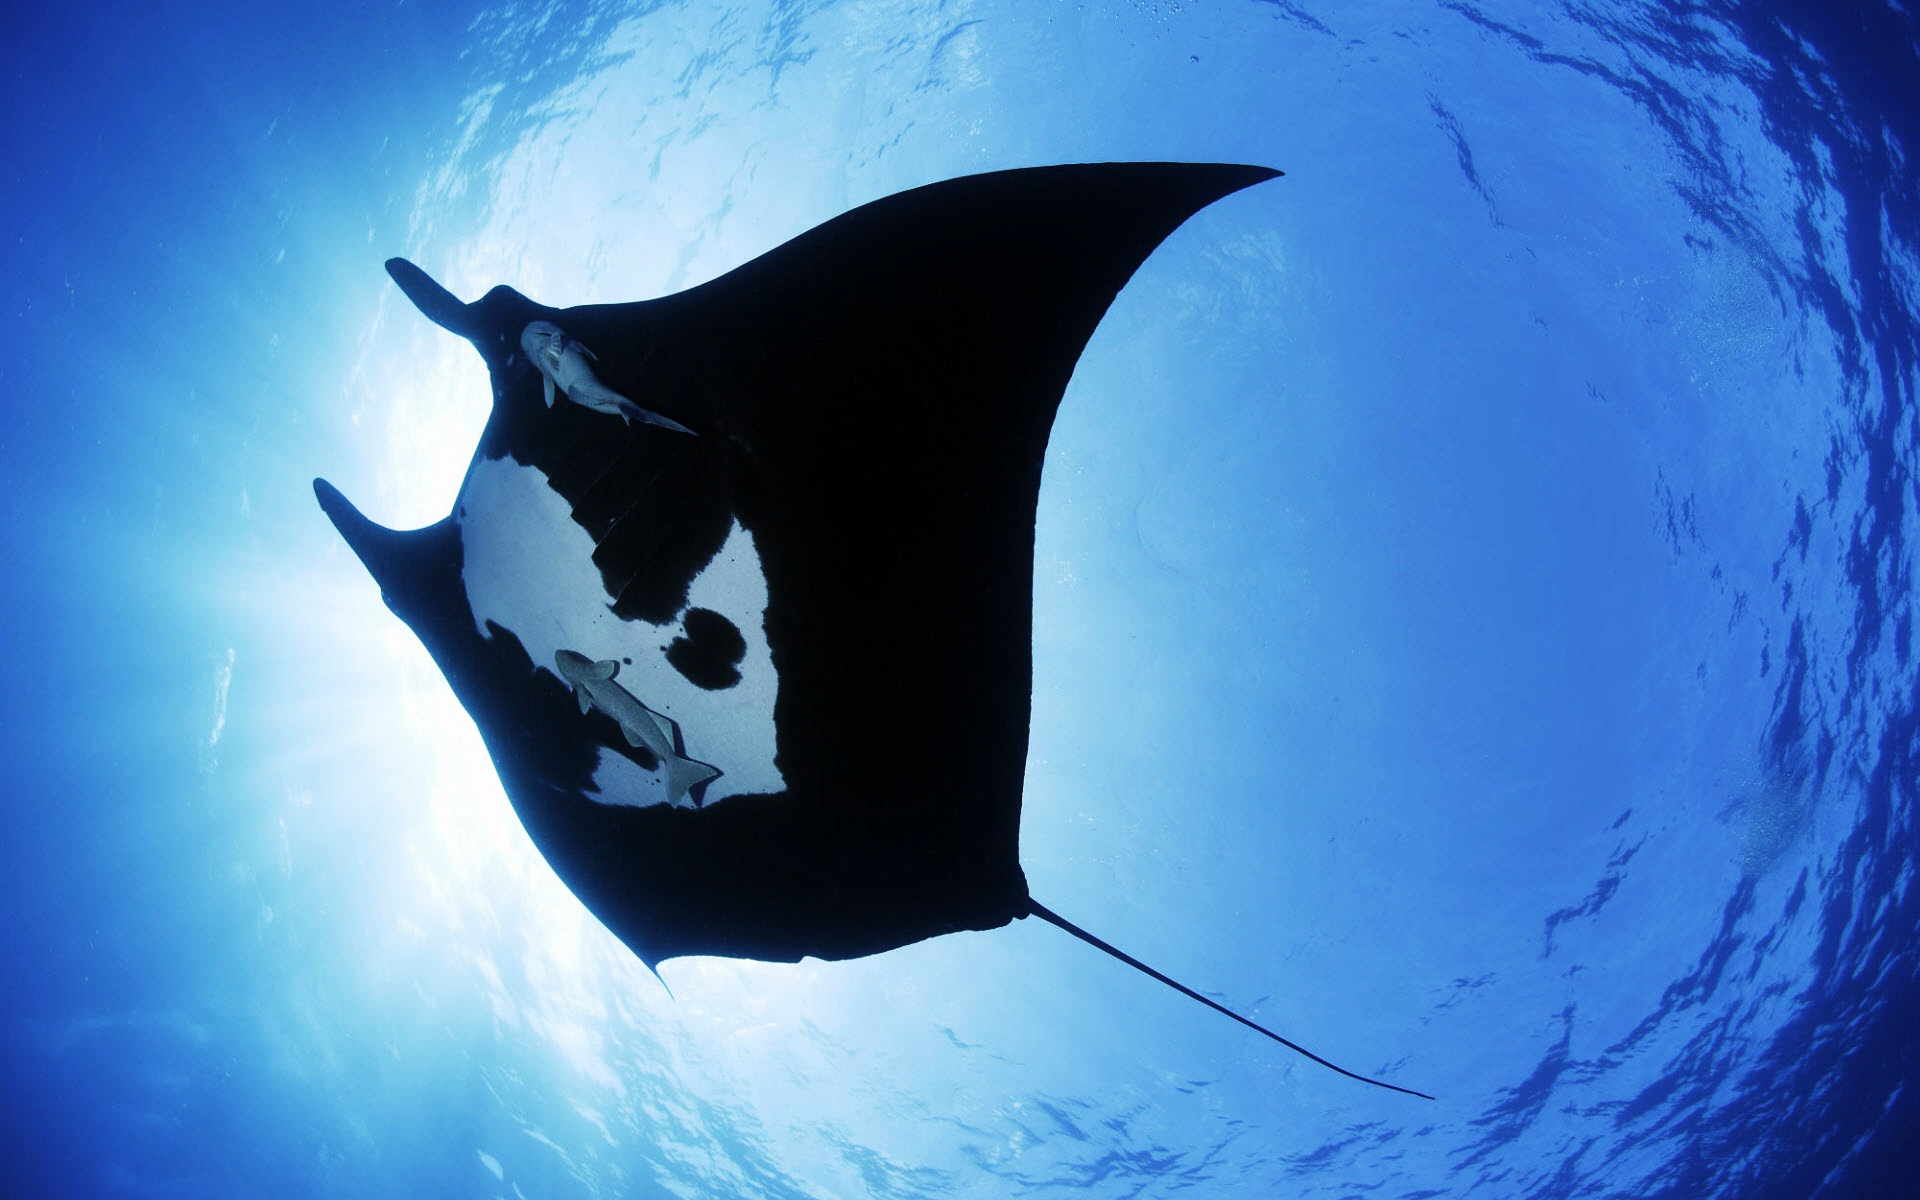 Giant-Oceanic-Manta-Ray-Wallpaper